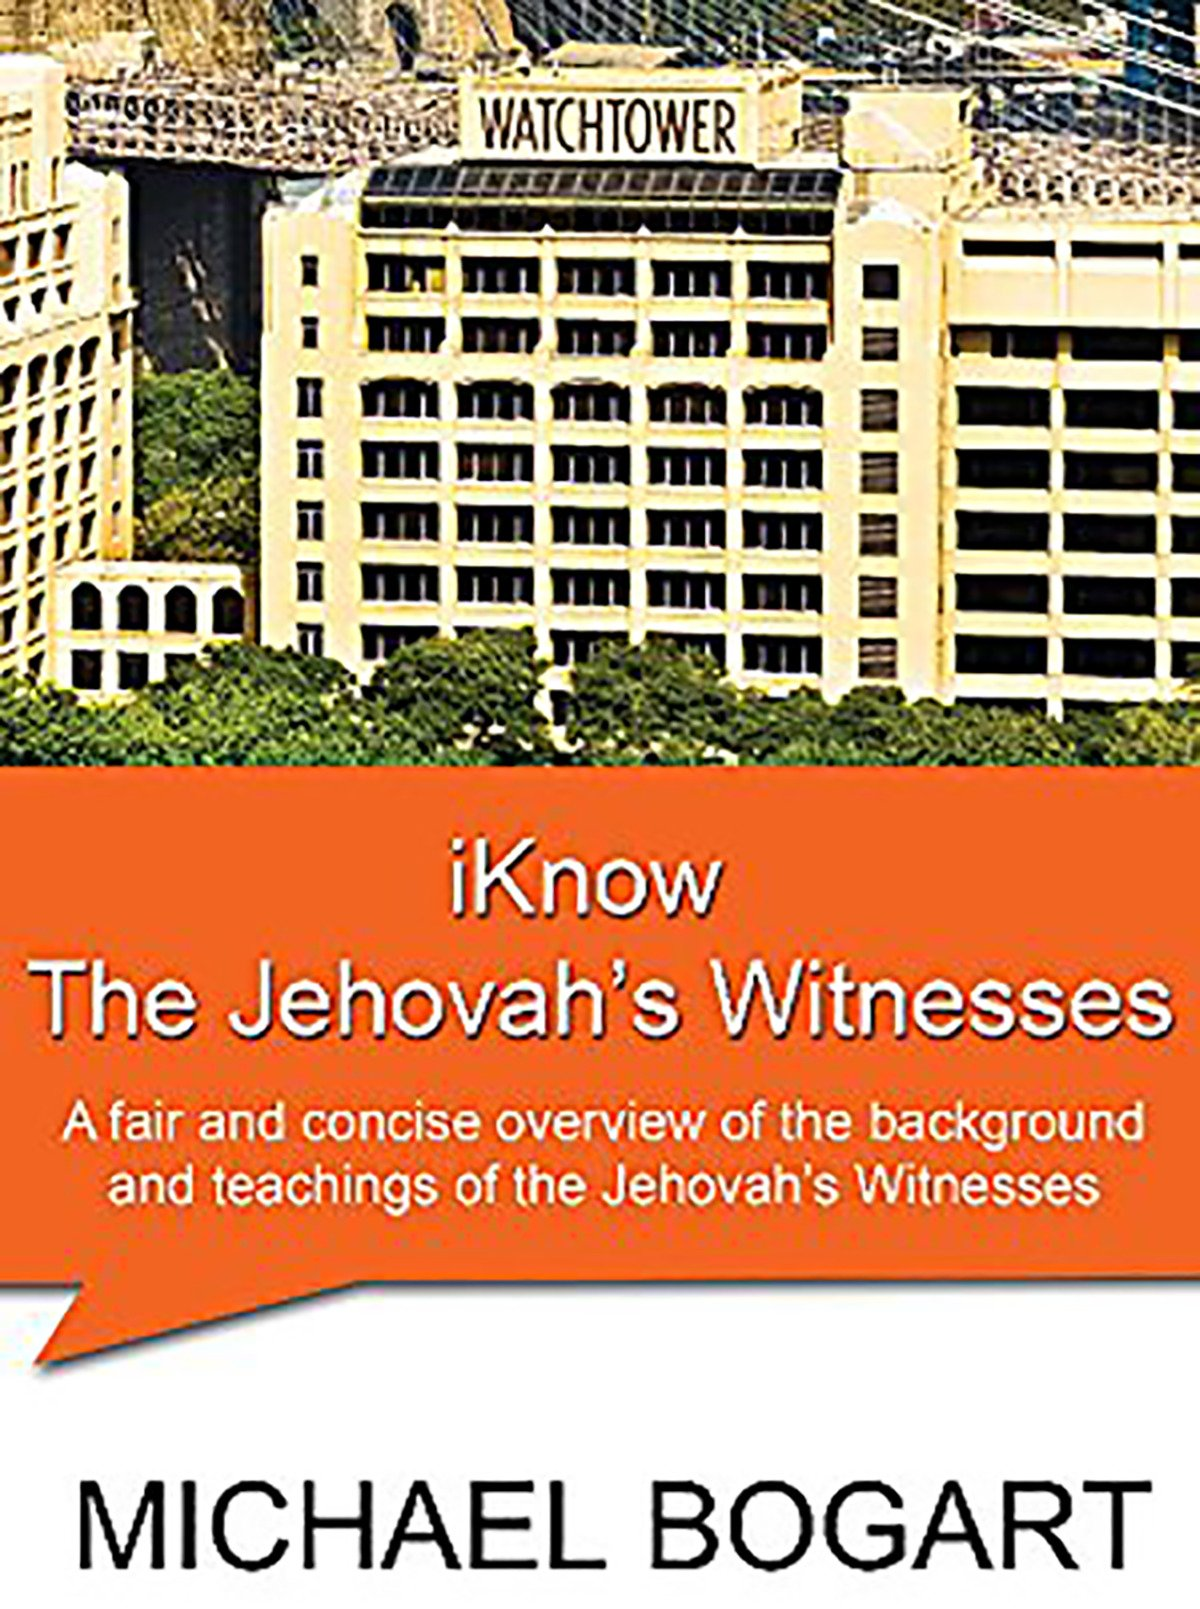 iKnow the Jehovah's Witnesses